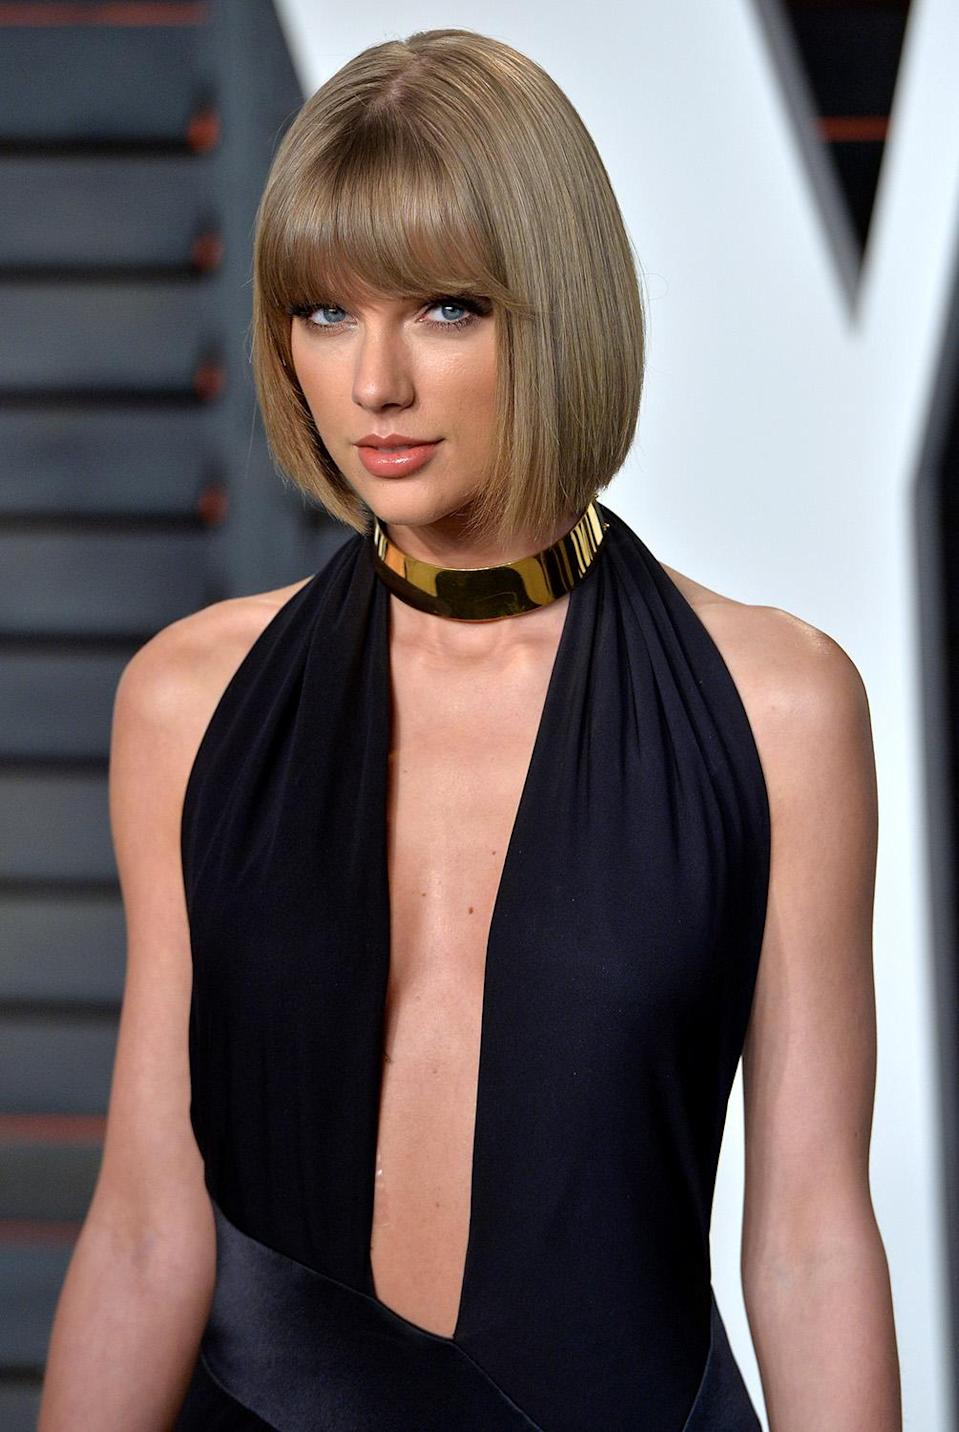 Taylor Swift attends the 2016 <em>Vanity Fair</em> Oscar Party in Beverly Hills. (Photo: Anthony Harvey/Getty Images)